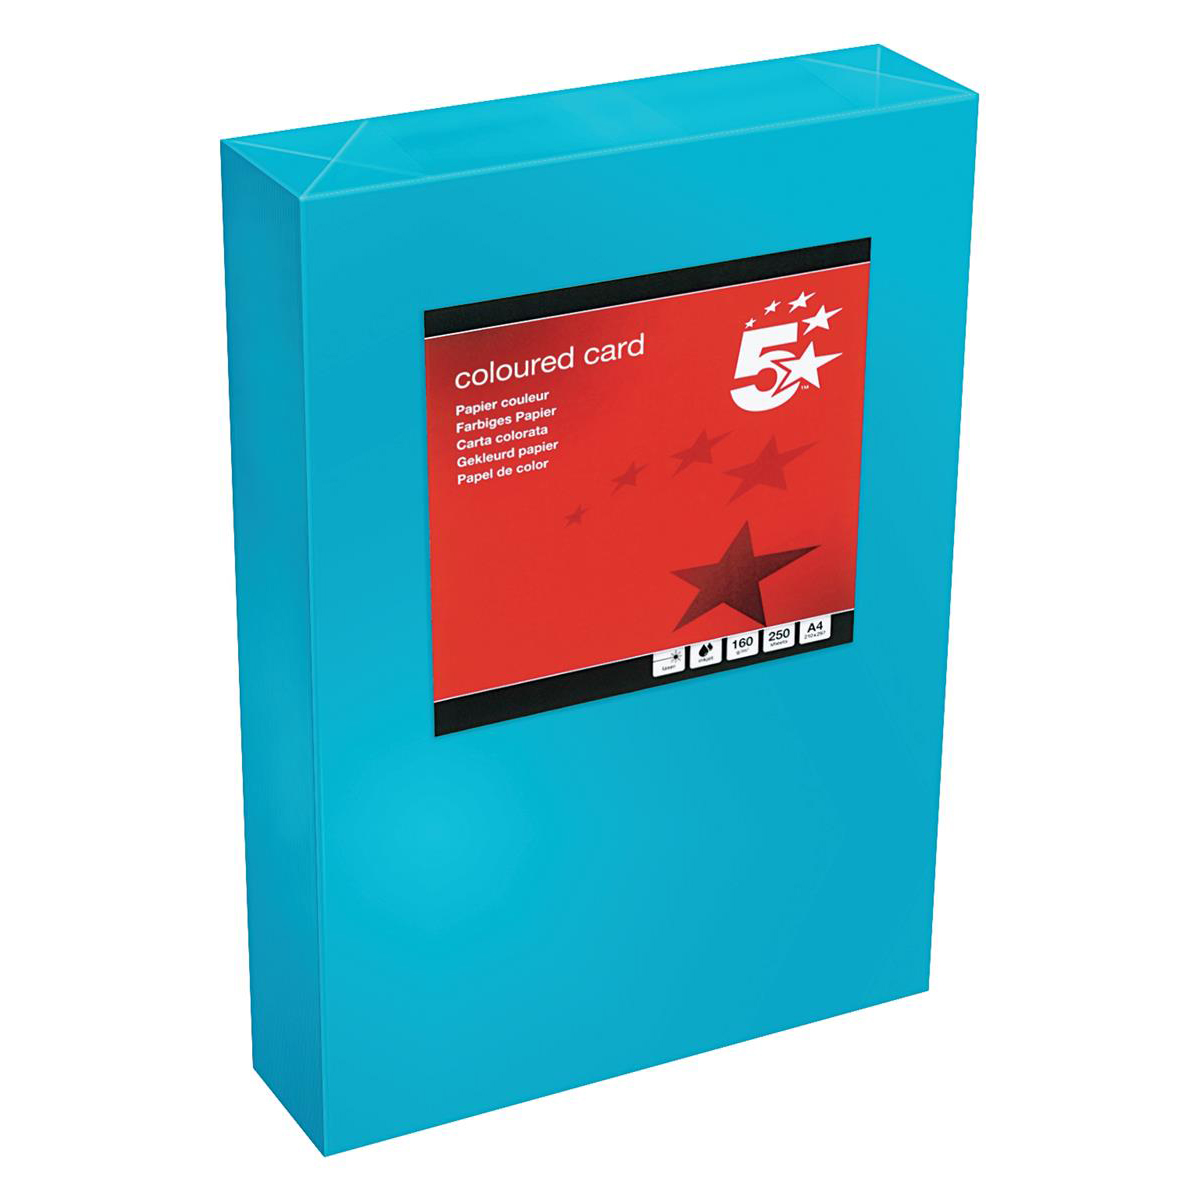 Card (160g+) 5 Star Office Coloured Card Tinted 160gsm A4 Deep Blue Pack 250